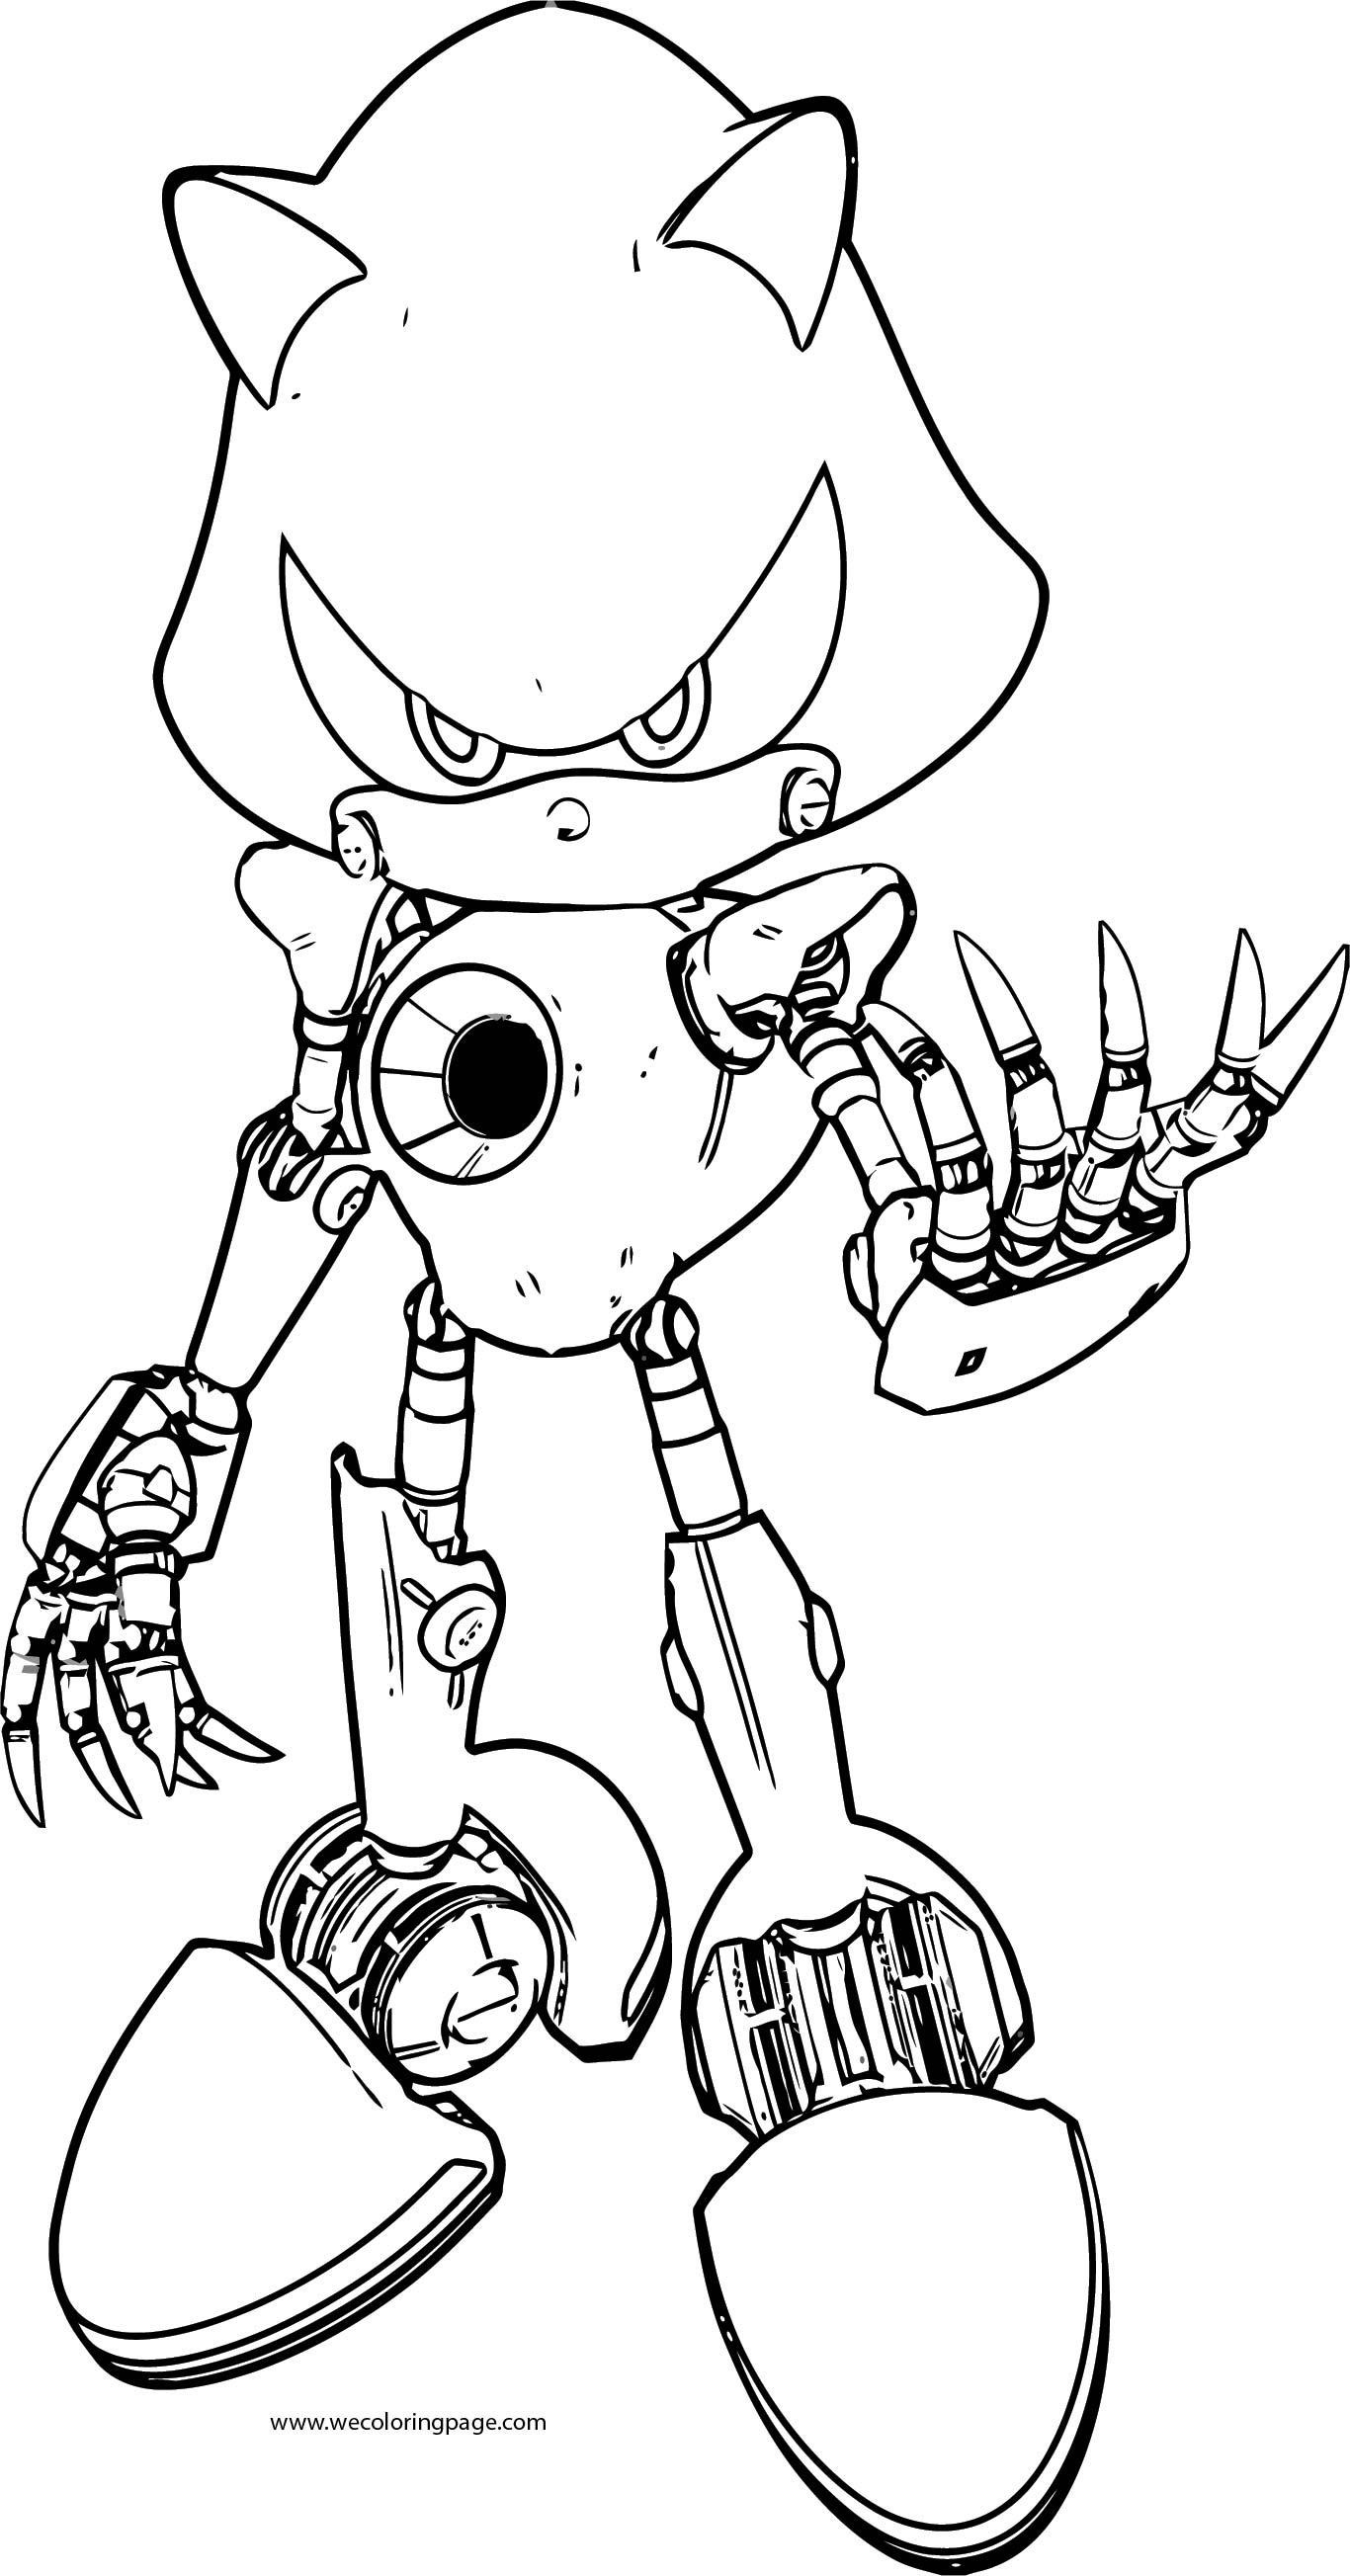 Mechanic Sonic The Hedgehog Coloring Page